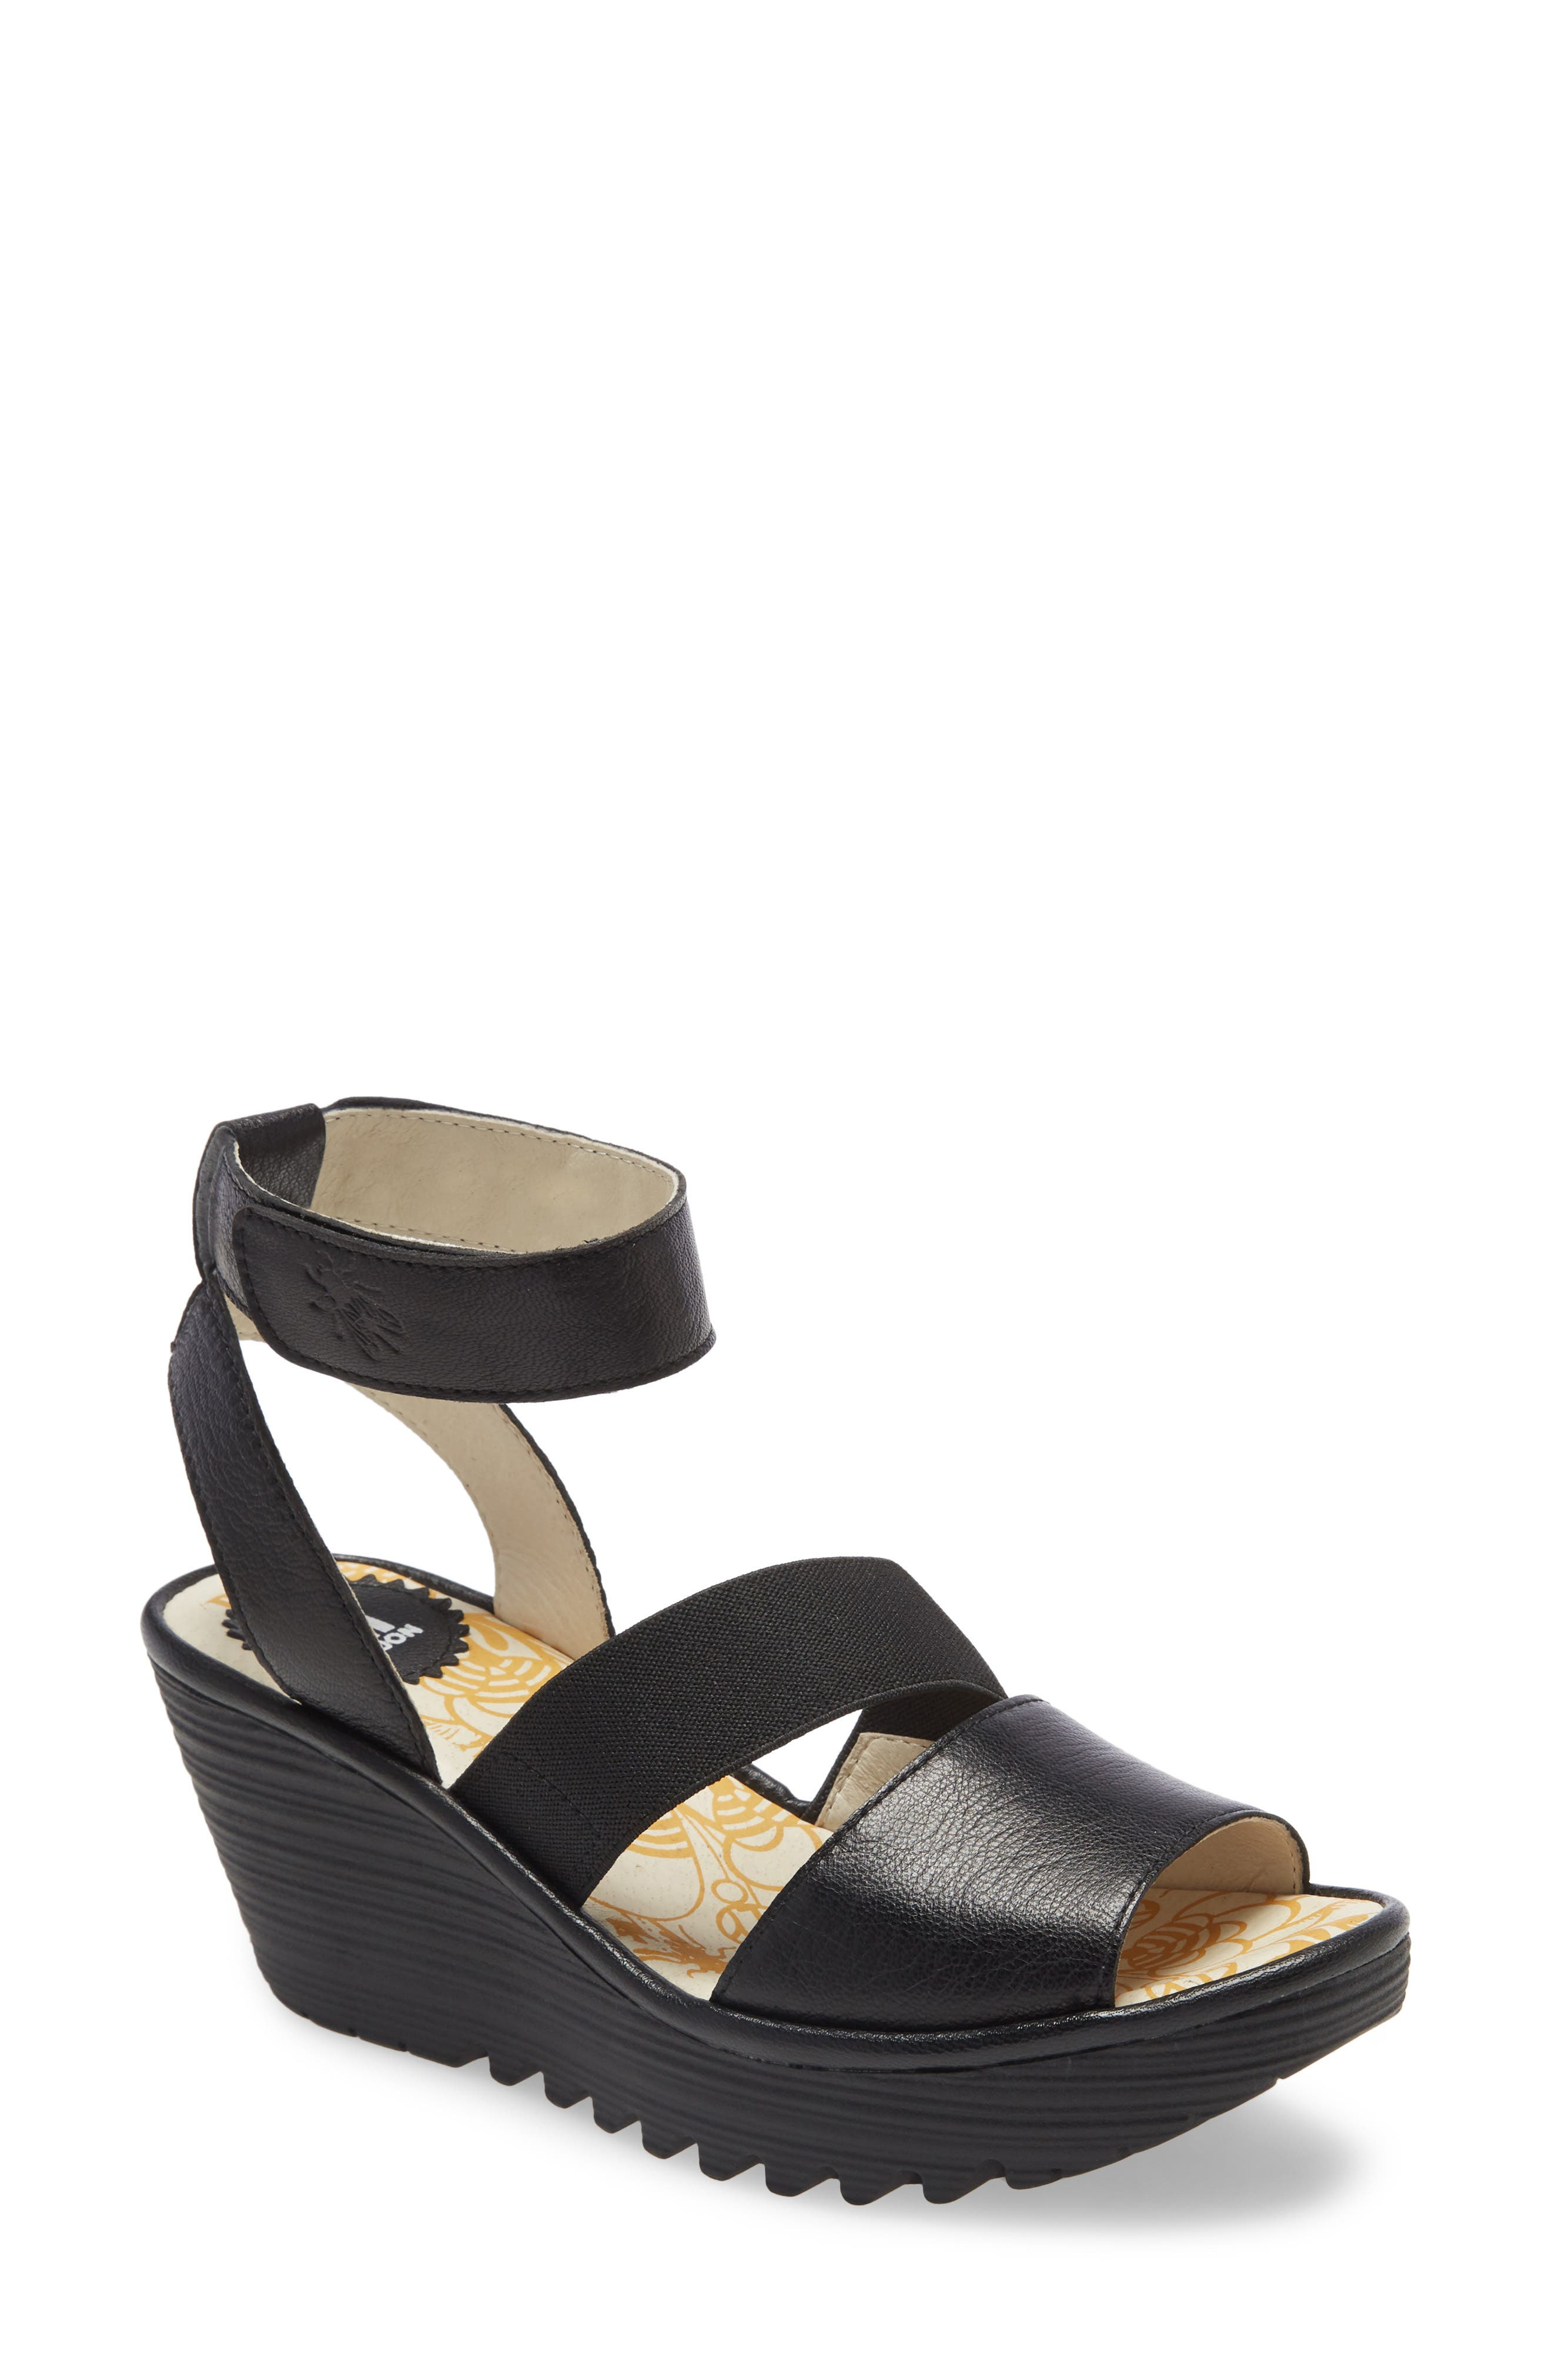 Razored treads and a textured wedge and platform add to the sporty look of an ankle-strap sandal made with a cushioned footbed. Style Name: Fly London Yode Wedge Sandal (Women). Style Number: 6002357. Available in stores.